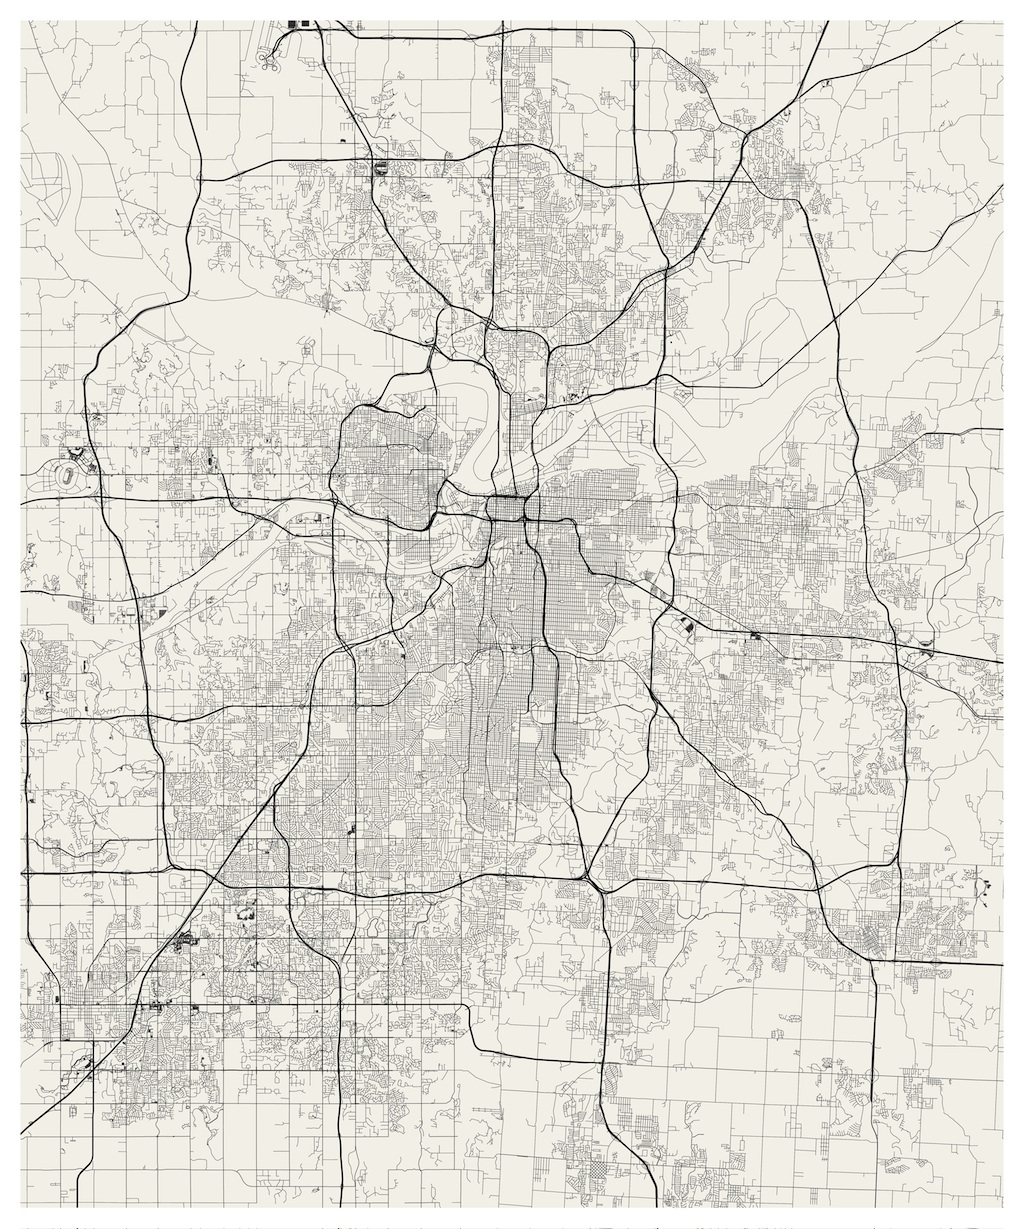 Kansas City Streets Visualized Jim Vallandingham - Kansas city map